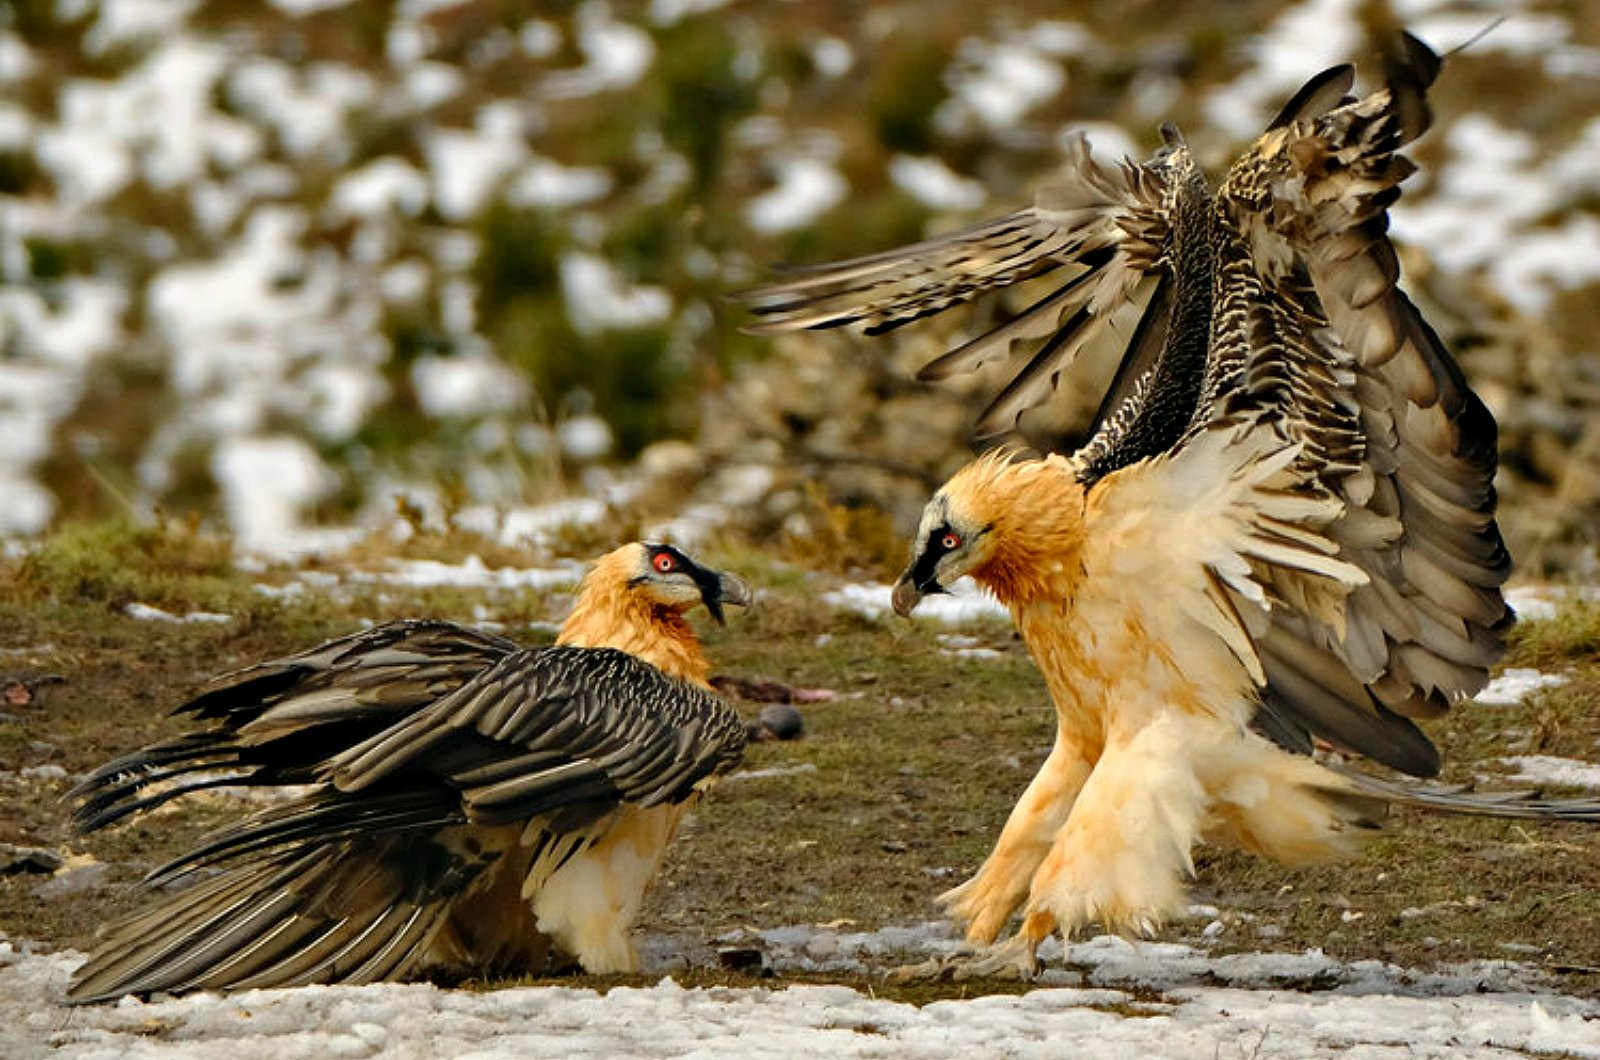 Two adult bearded vultures tussle on the groun in front of the hides on our Birds of Northern Spain trip in the Spanish Pyrenees